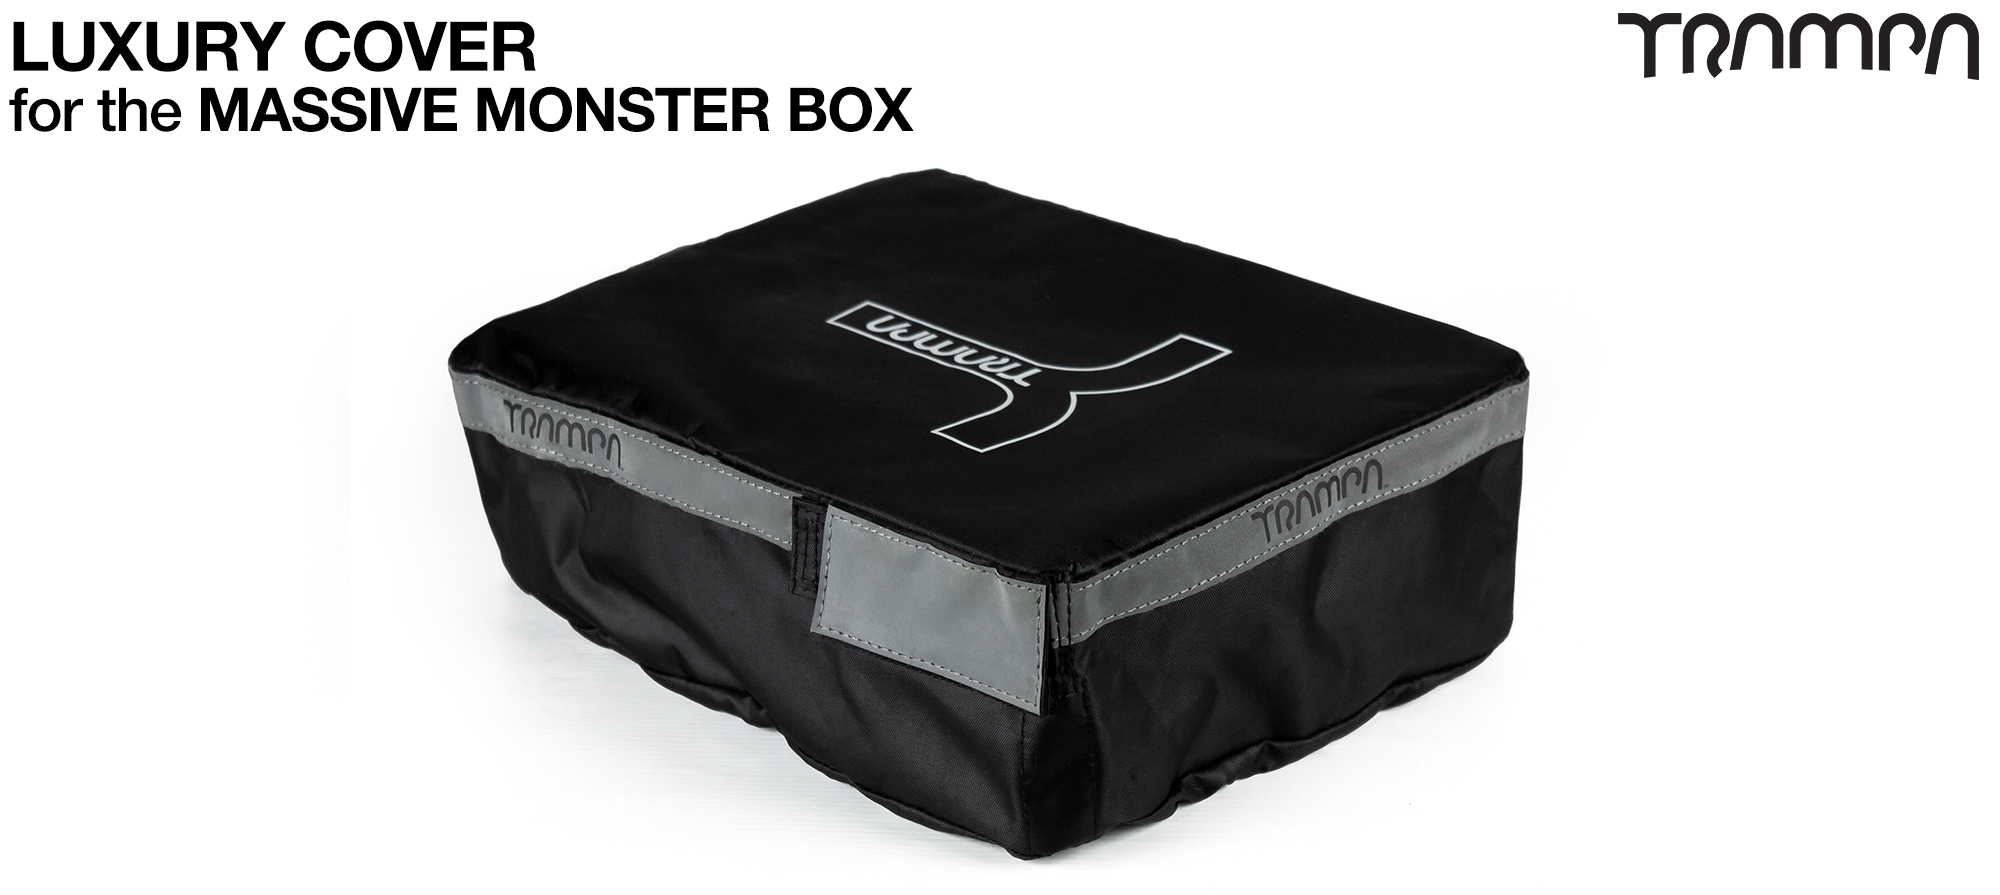 HEAVY DUTY MASSIVE Monster Box protective LUXURY Cover with Inspection pit & Pockets for tools...